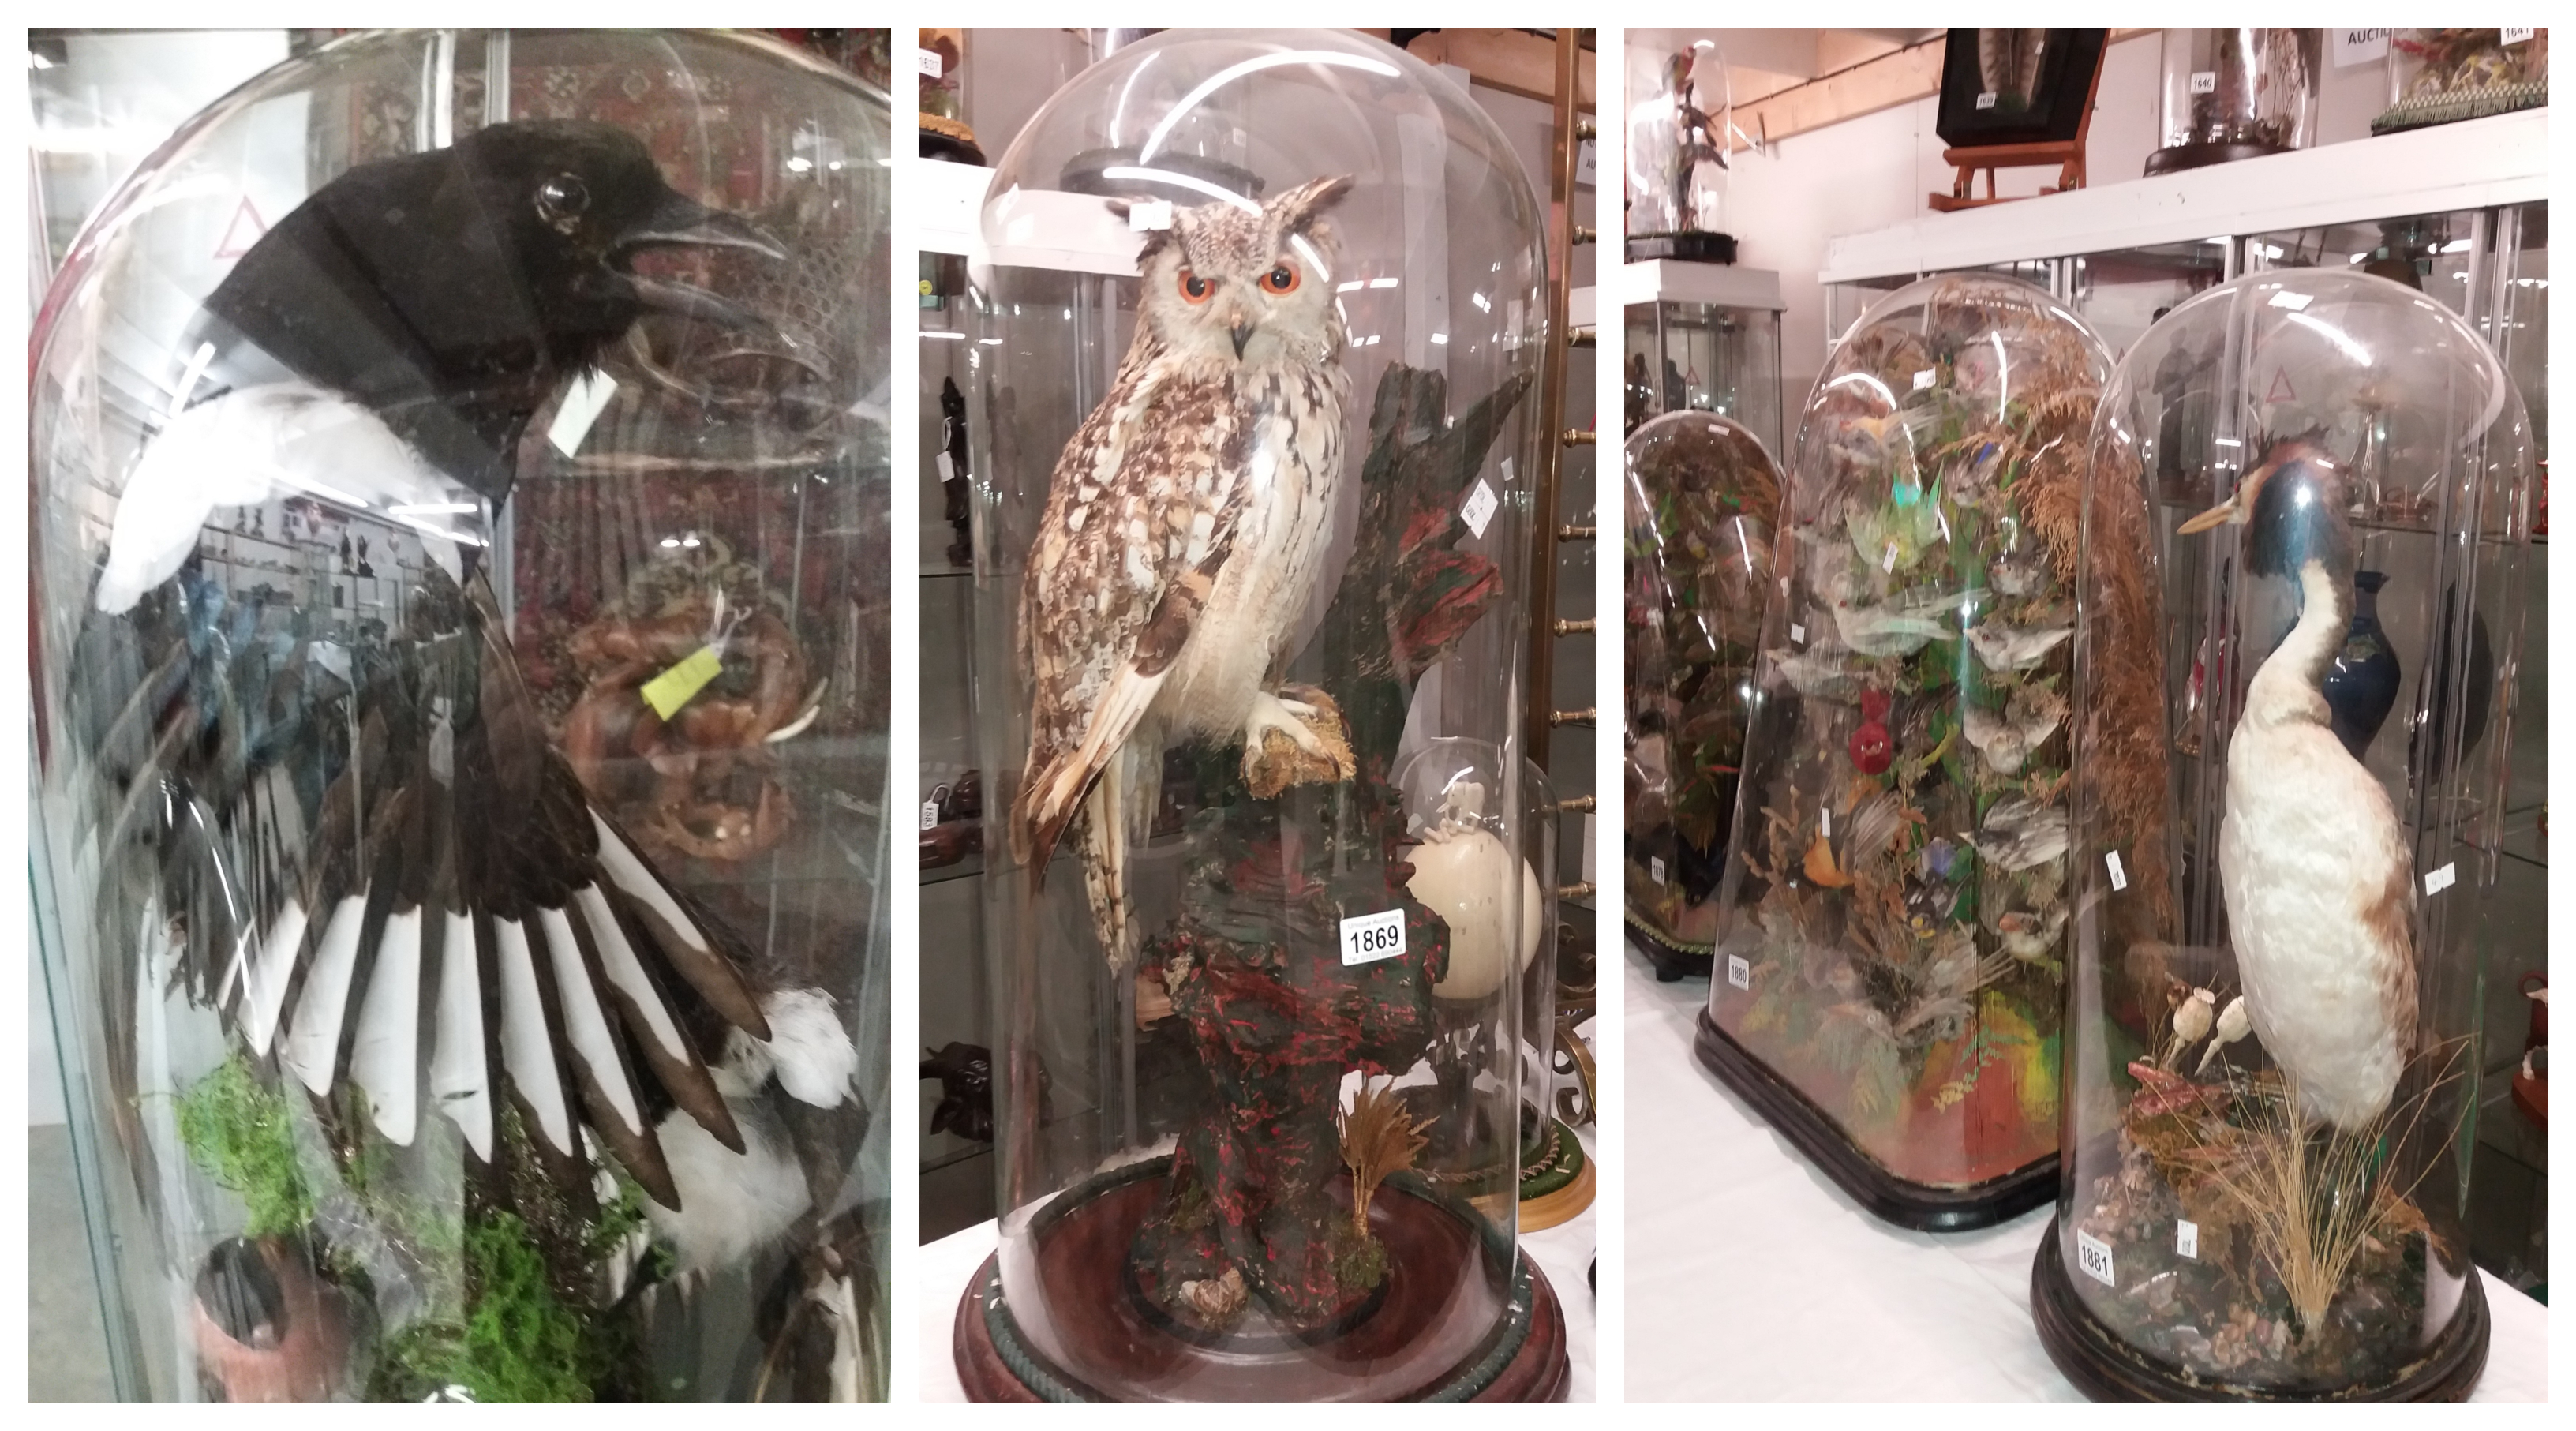 Extraordinary Collection of Taxidermy Comes to Auction